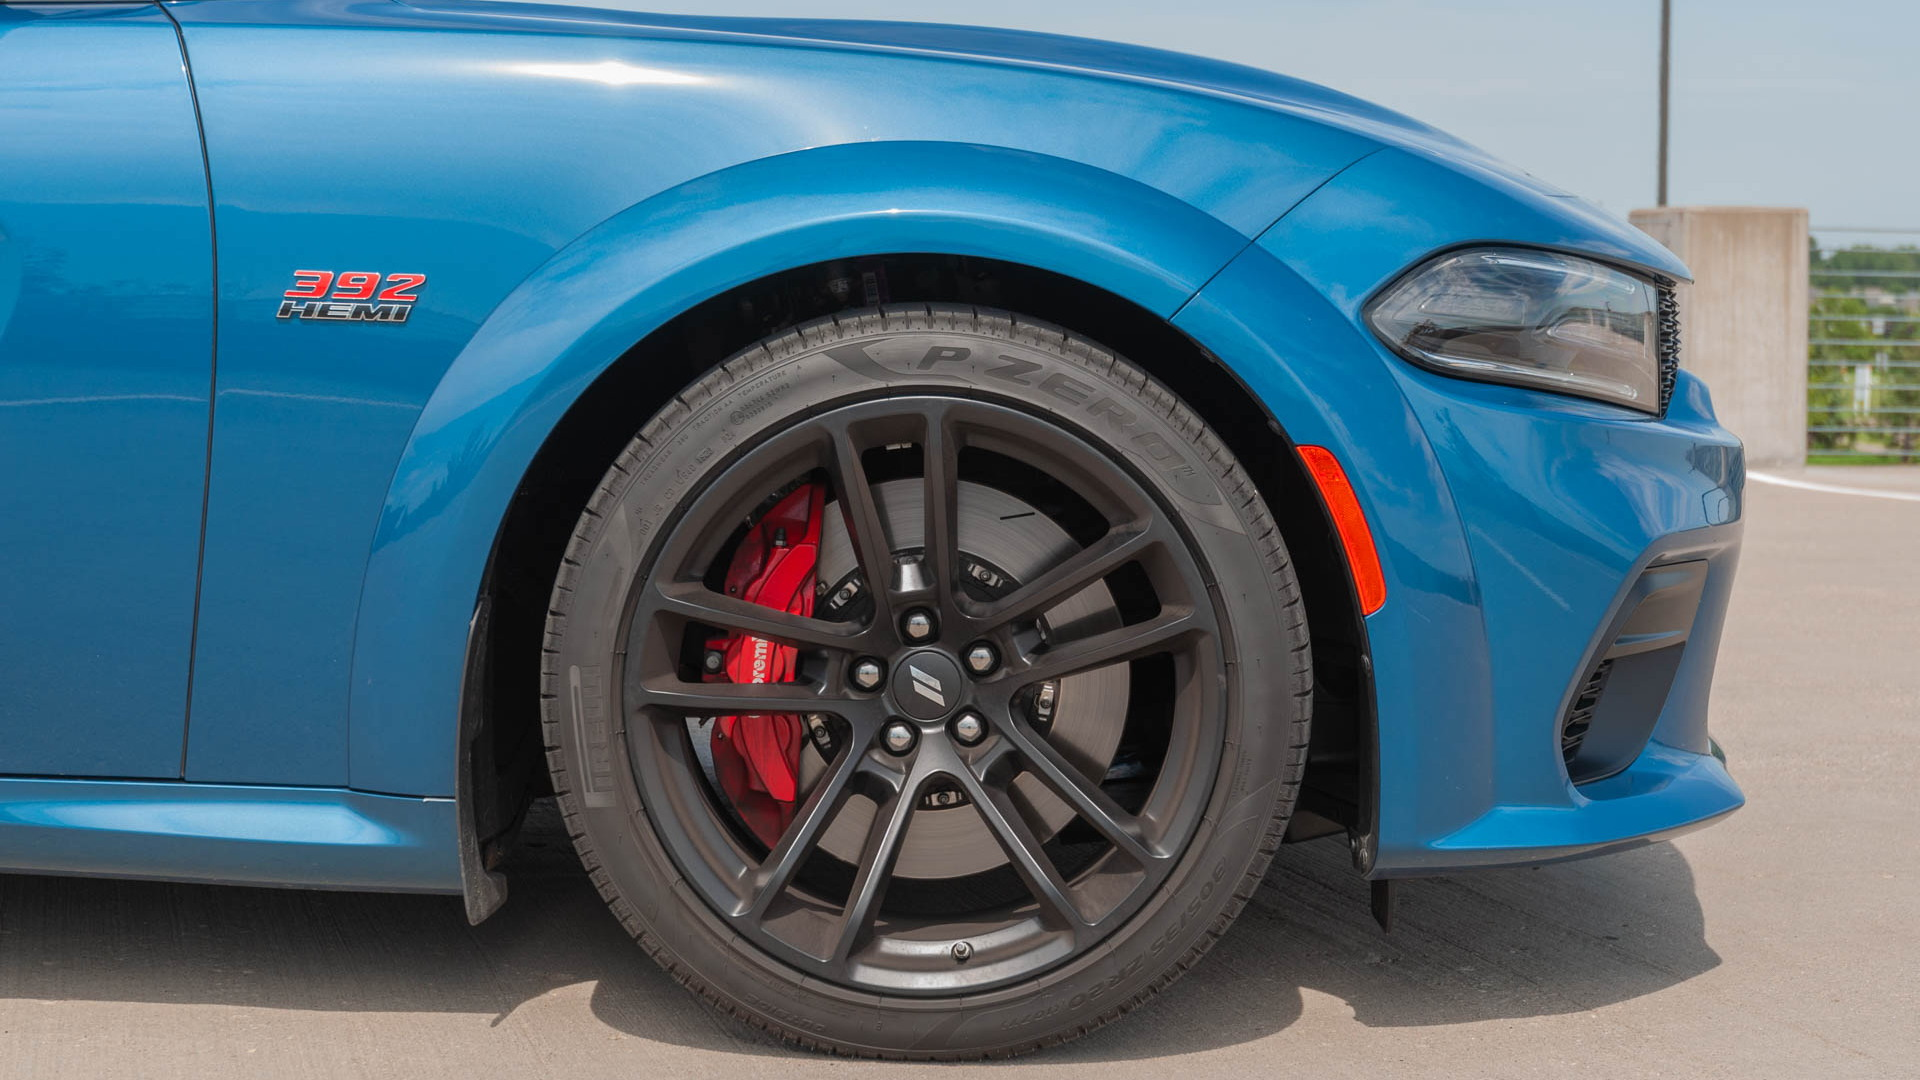 dodge charger scat pack tire size The 2 Dodge Charger R/T Scat Pack Widebody says to hell with